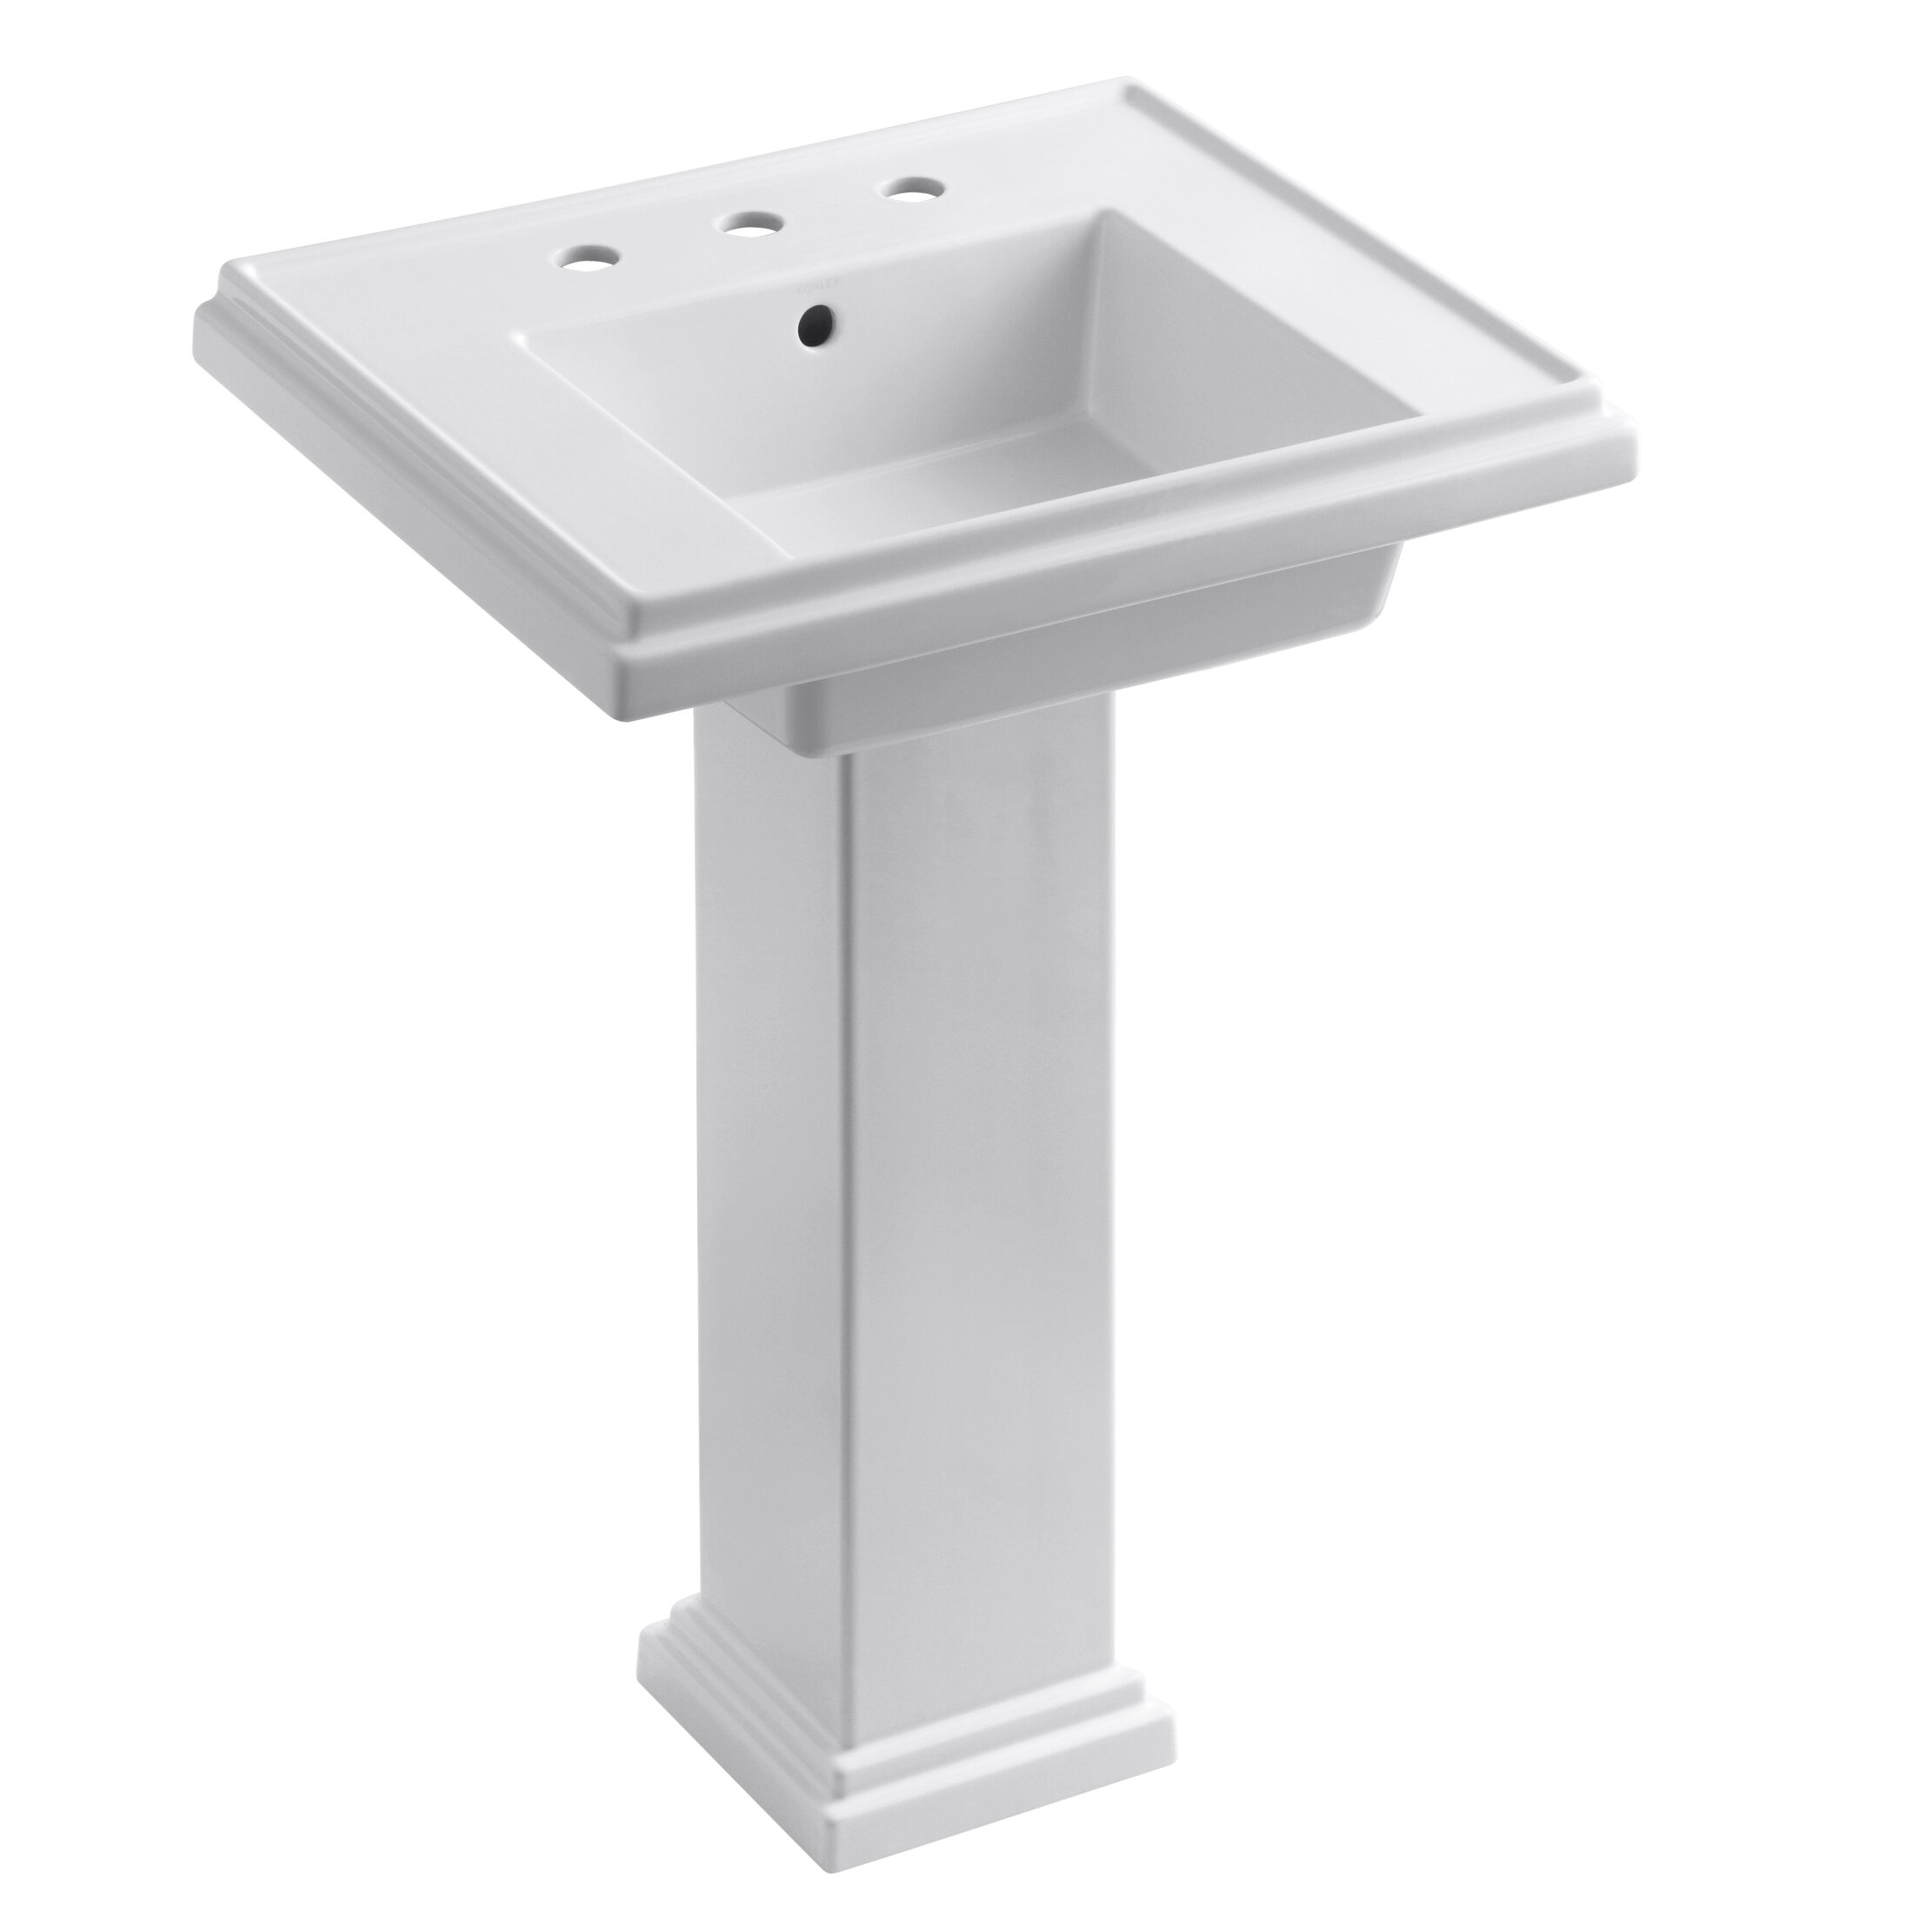 pedestal small kohler stereomiami sink awesome of archer bathroom architechture sinks square picture